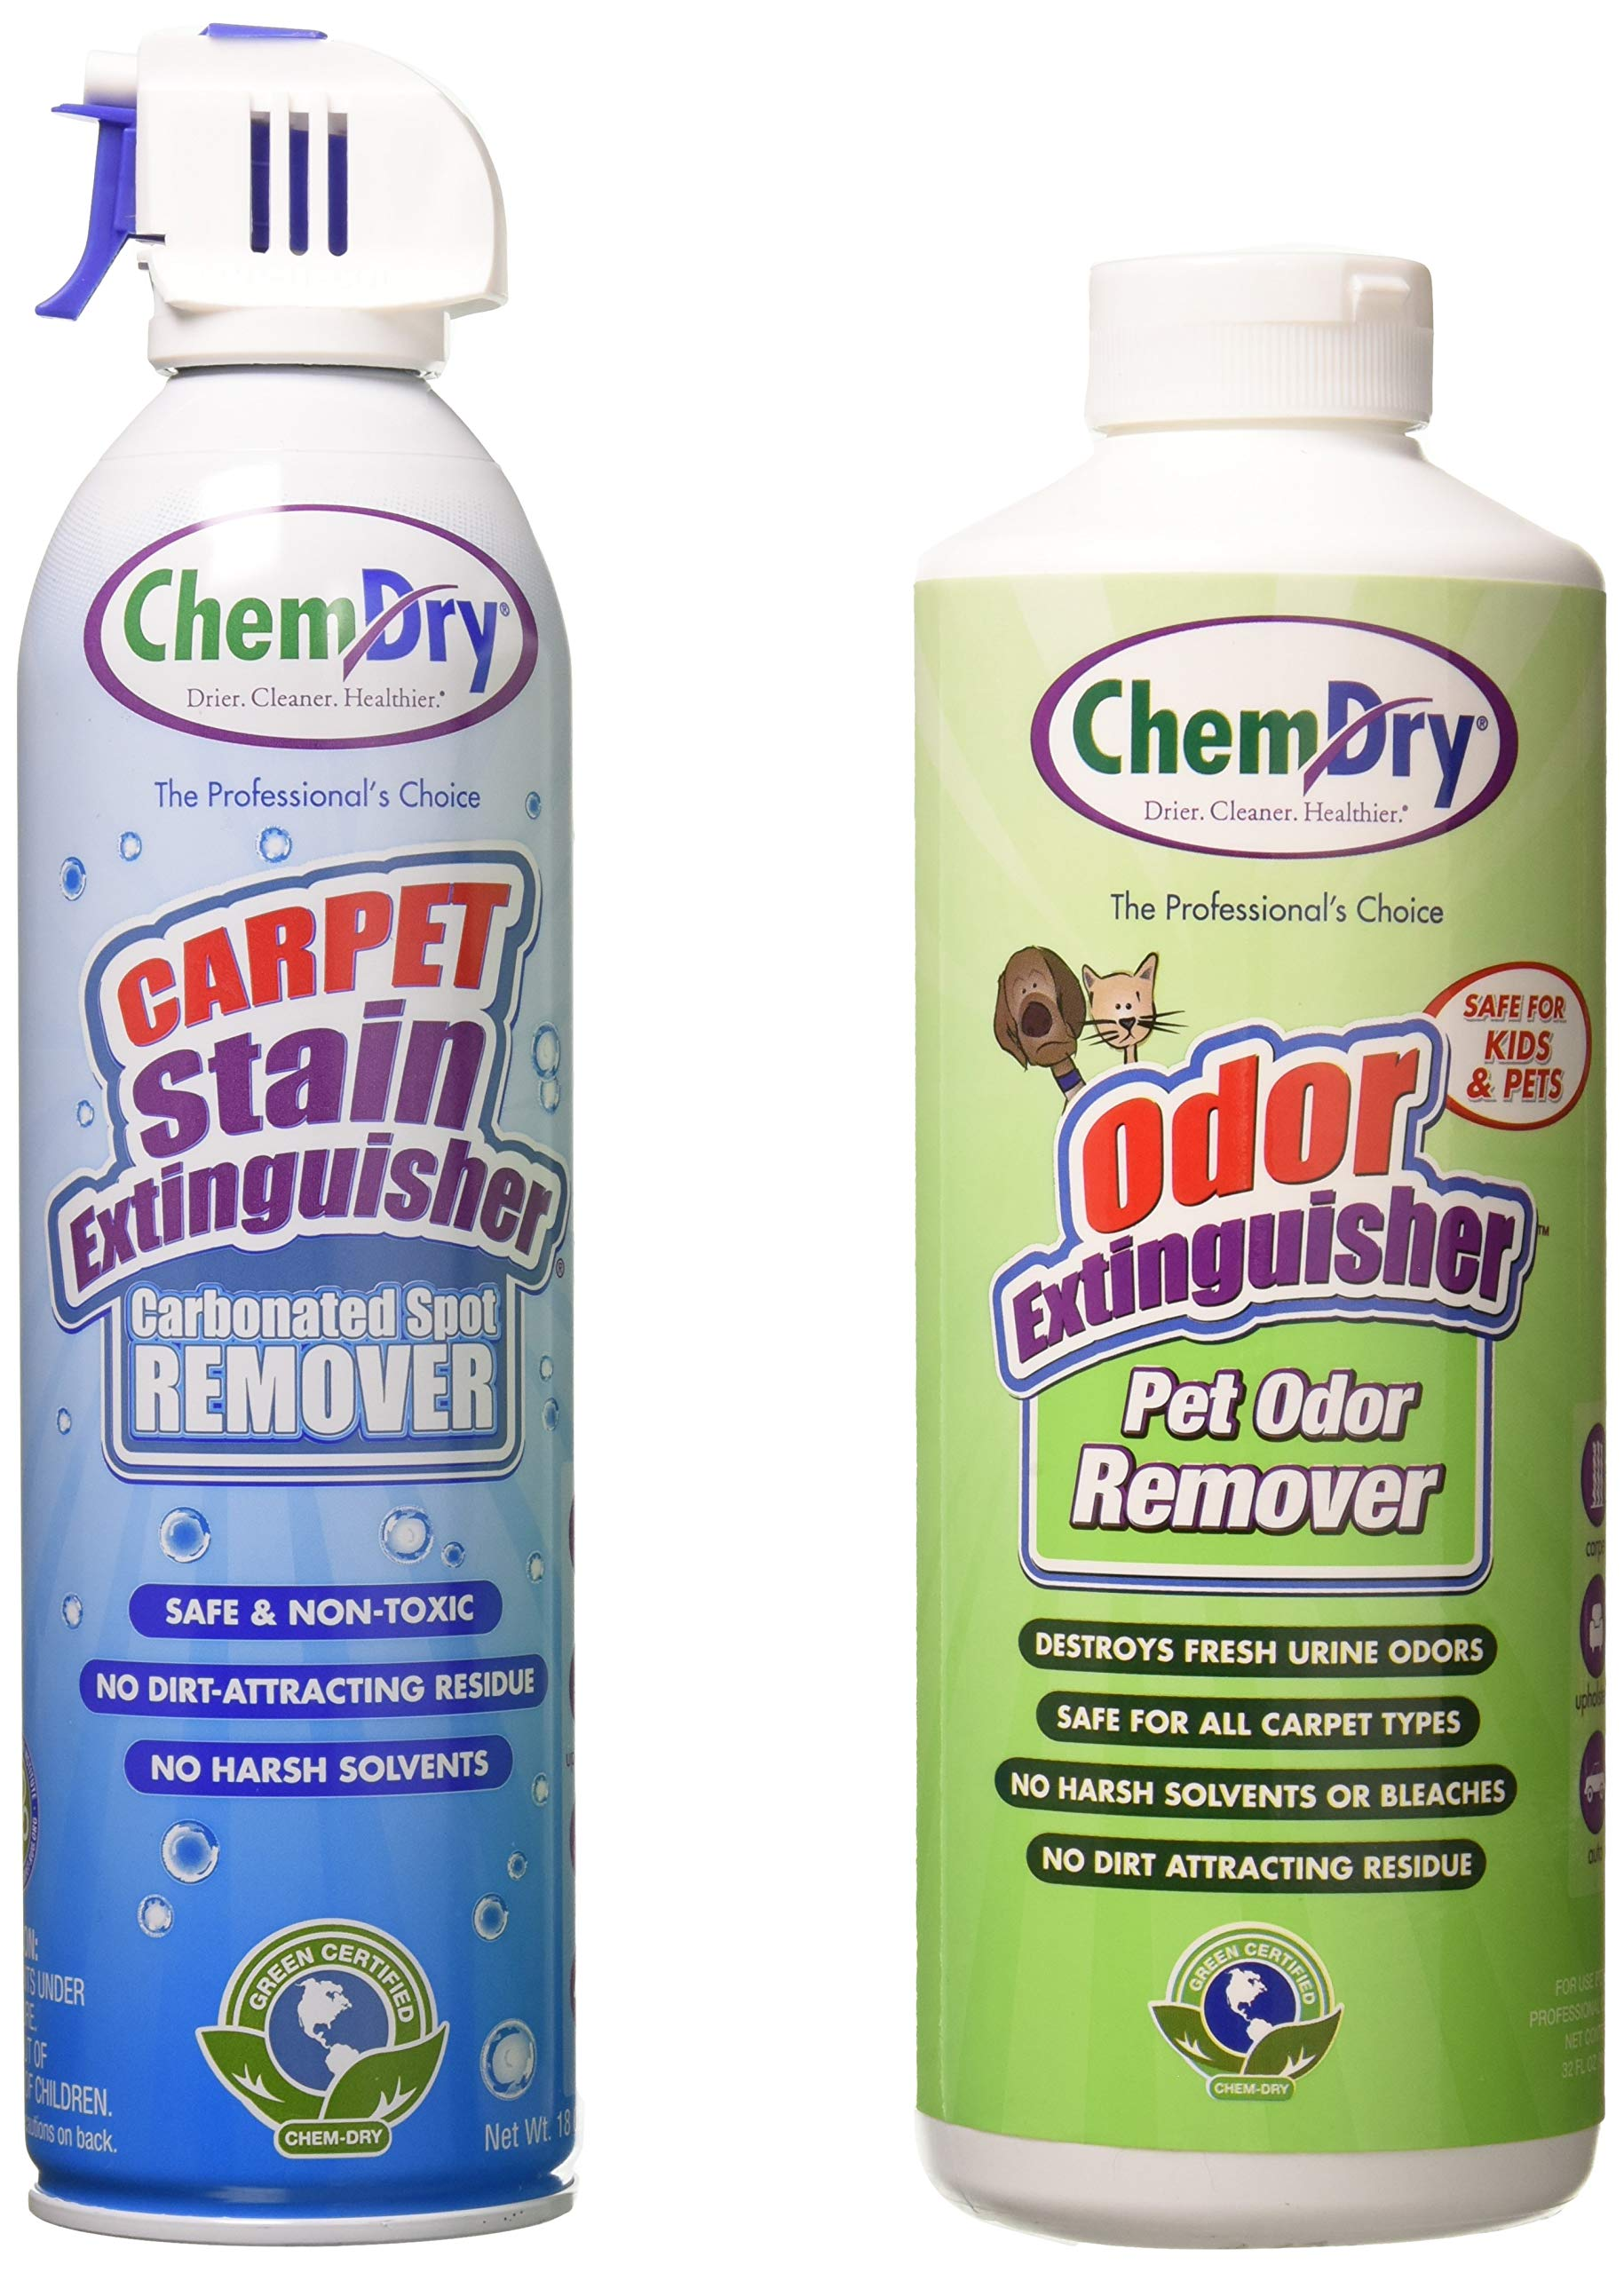 Chem-Dry Carpet Stain Extinguisher and Pet Odor Extinguisher Combo 18. oz  2 pack